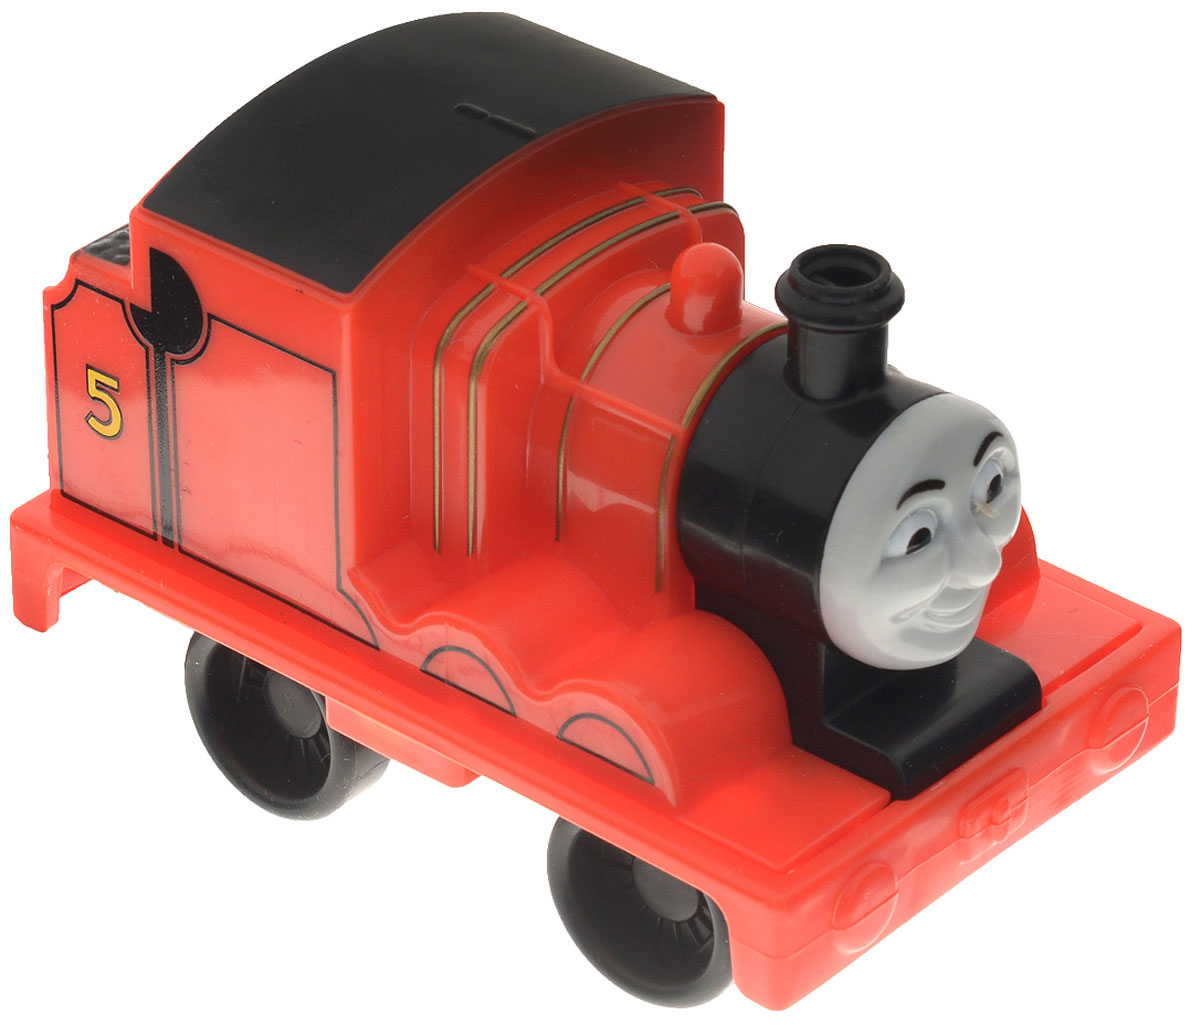 Thomas&Friends Паровозик Джеймс W2191 ольсен иб спанг маленький паровозик